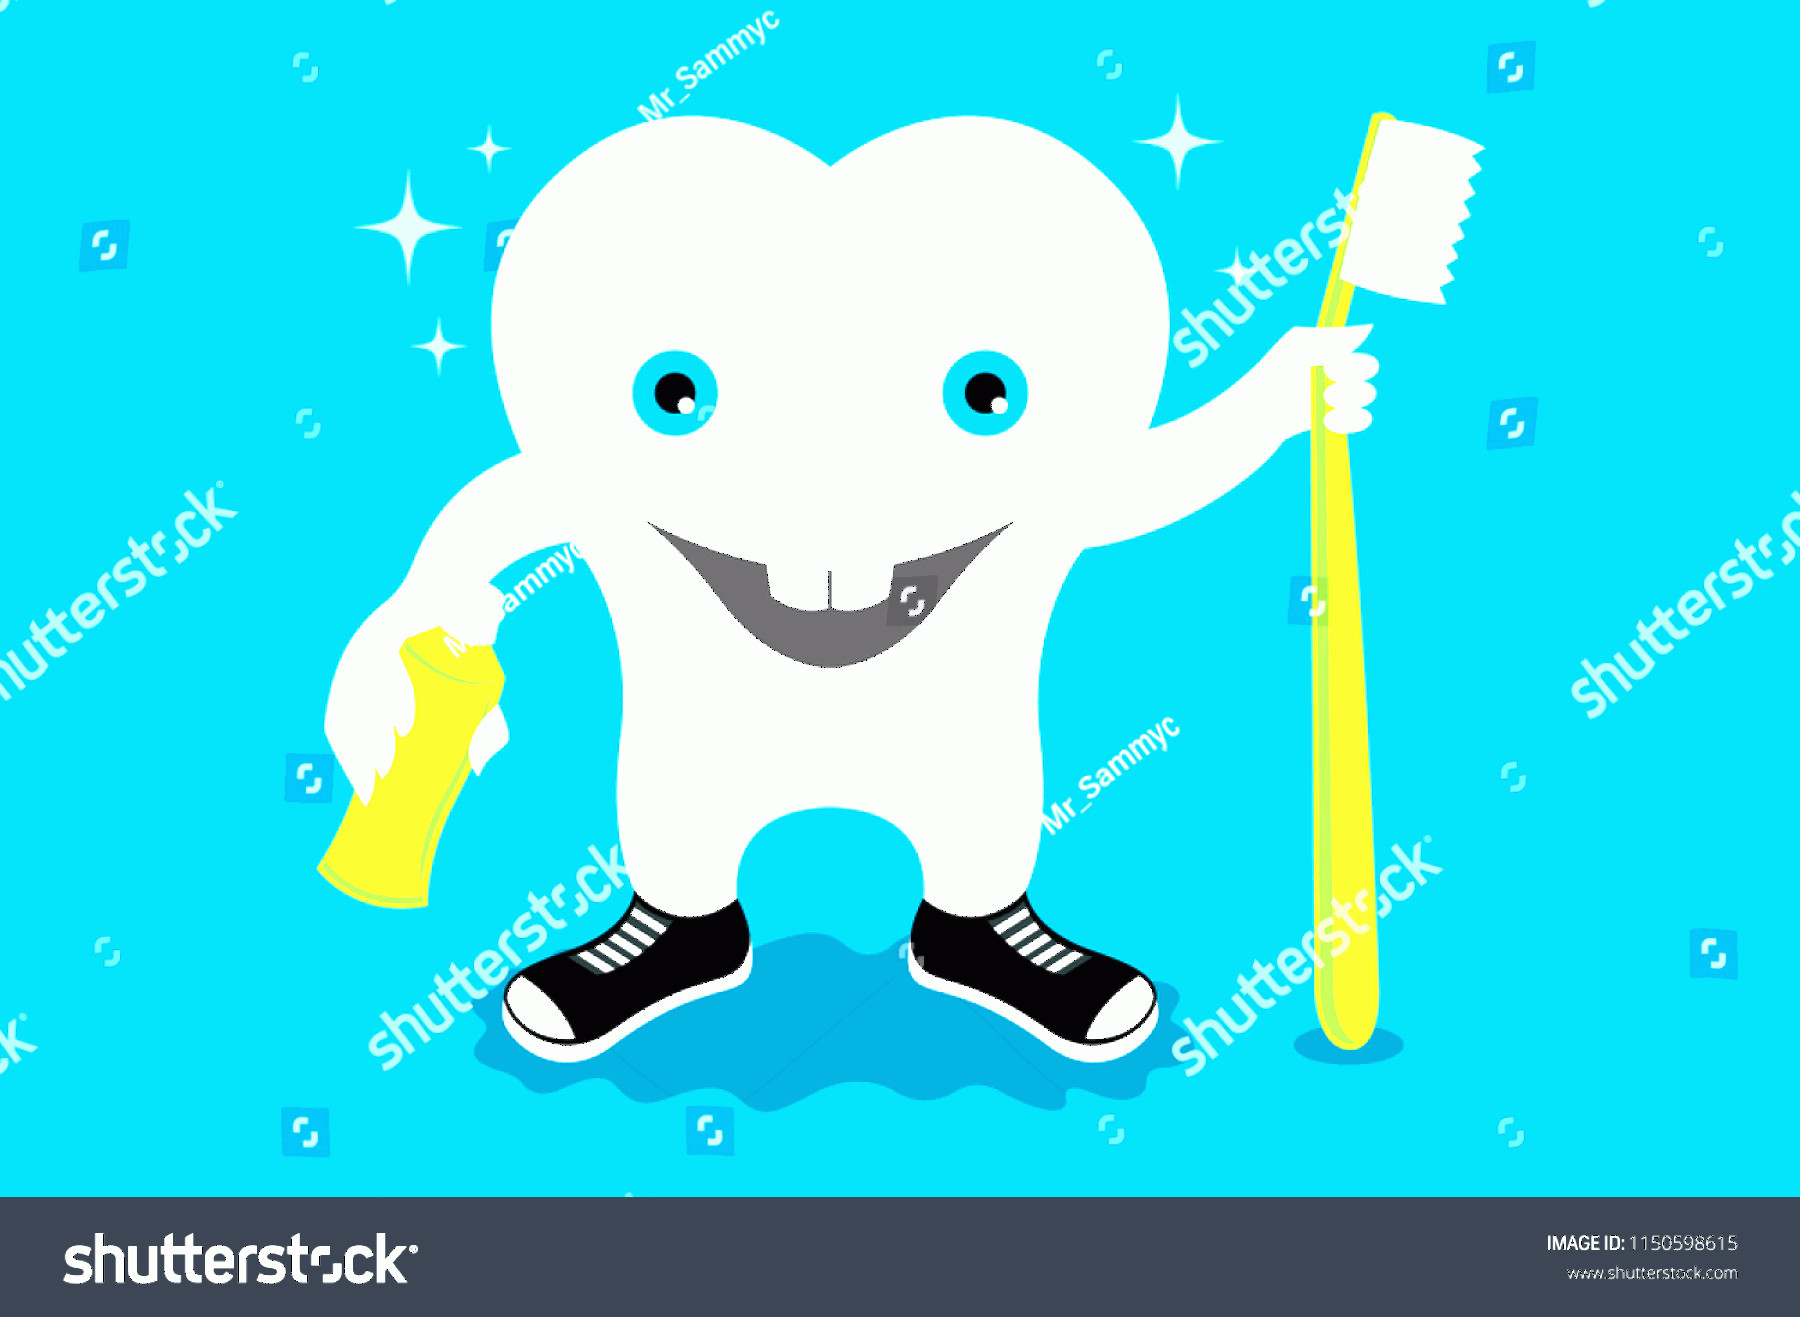 Toothpaste Cartoon Vector: Tooth Toothbrush Toothpaste Cartoon Vector Illustration